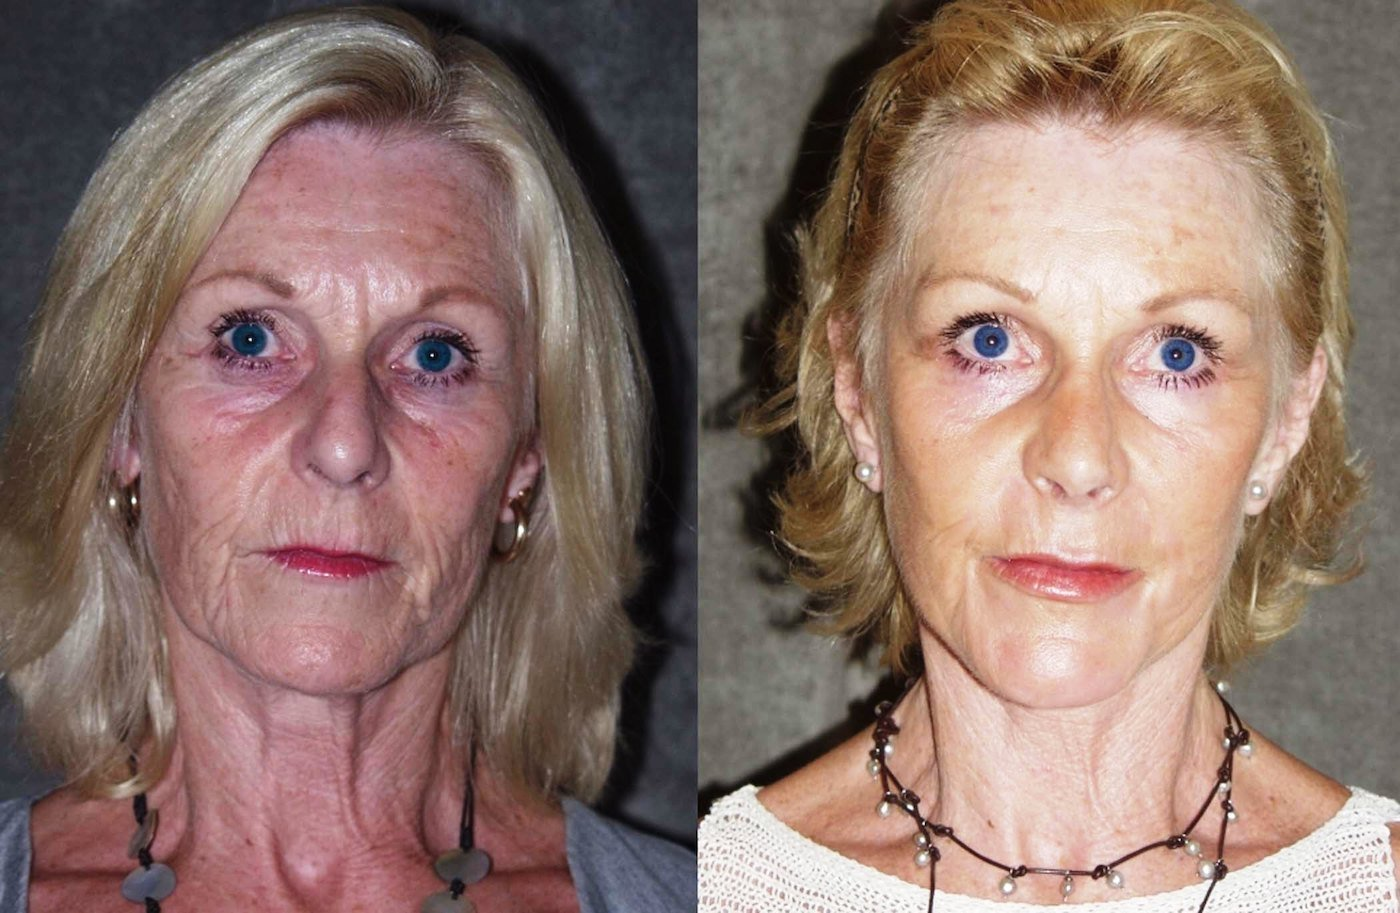 Facelift endoscopic browlift chin implant rhinoplasty front view